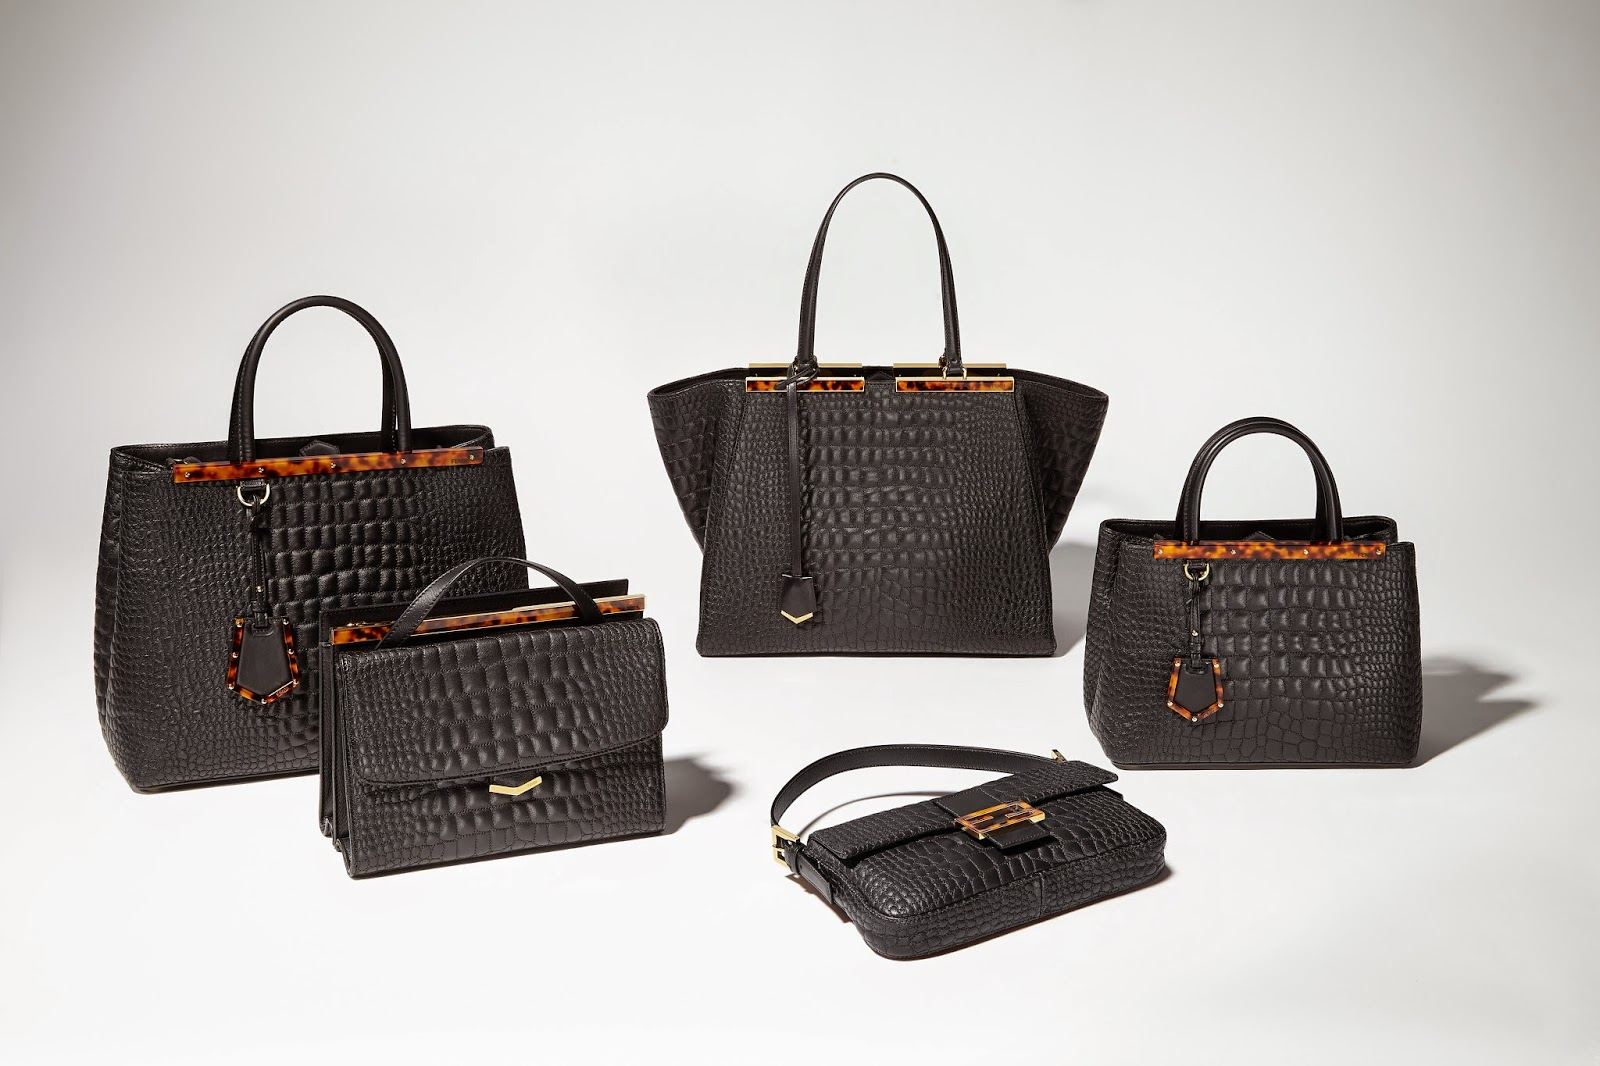 Fendi Launches Croco Embroidery Bags